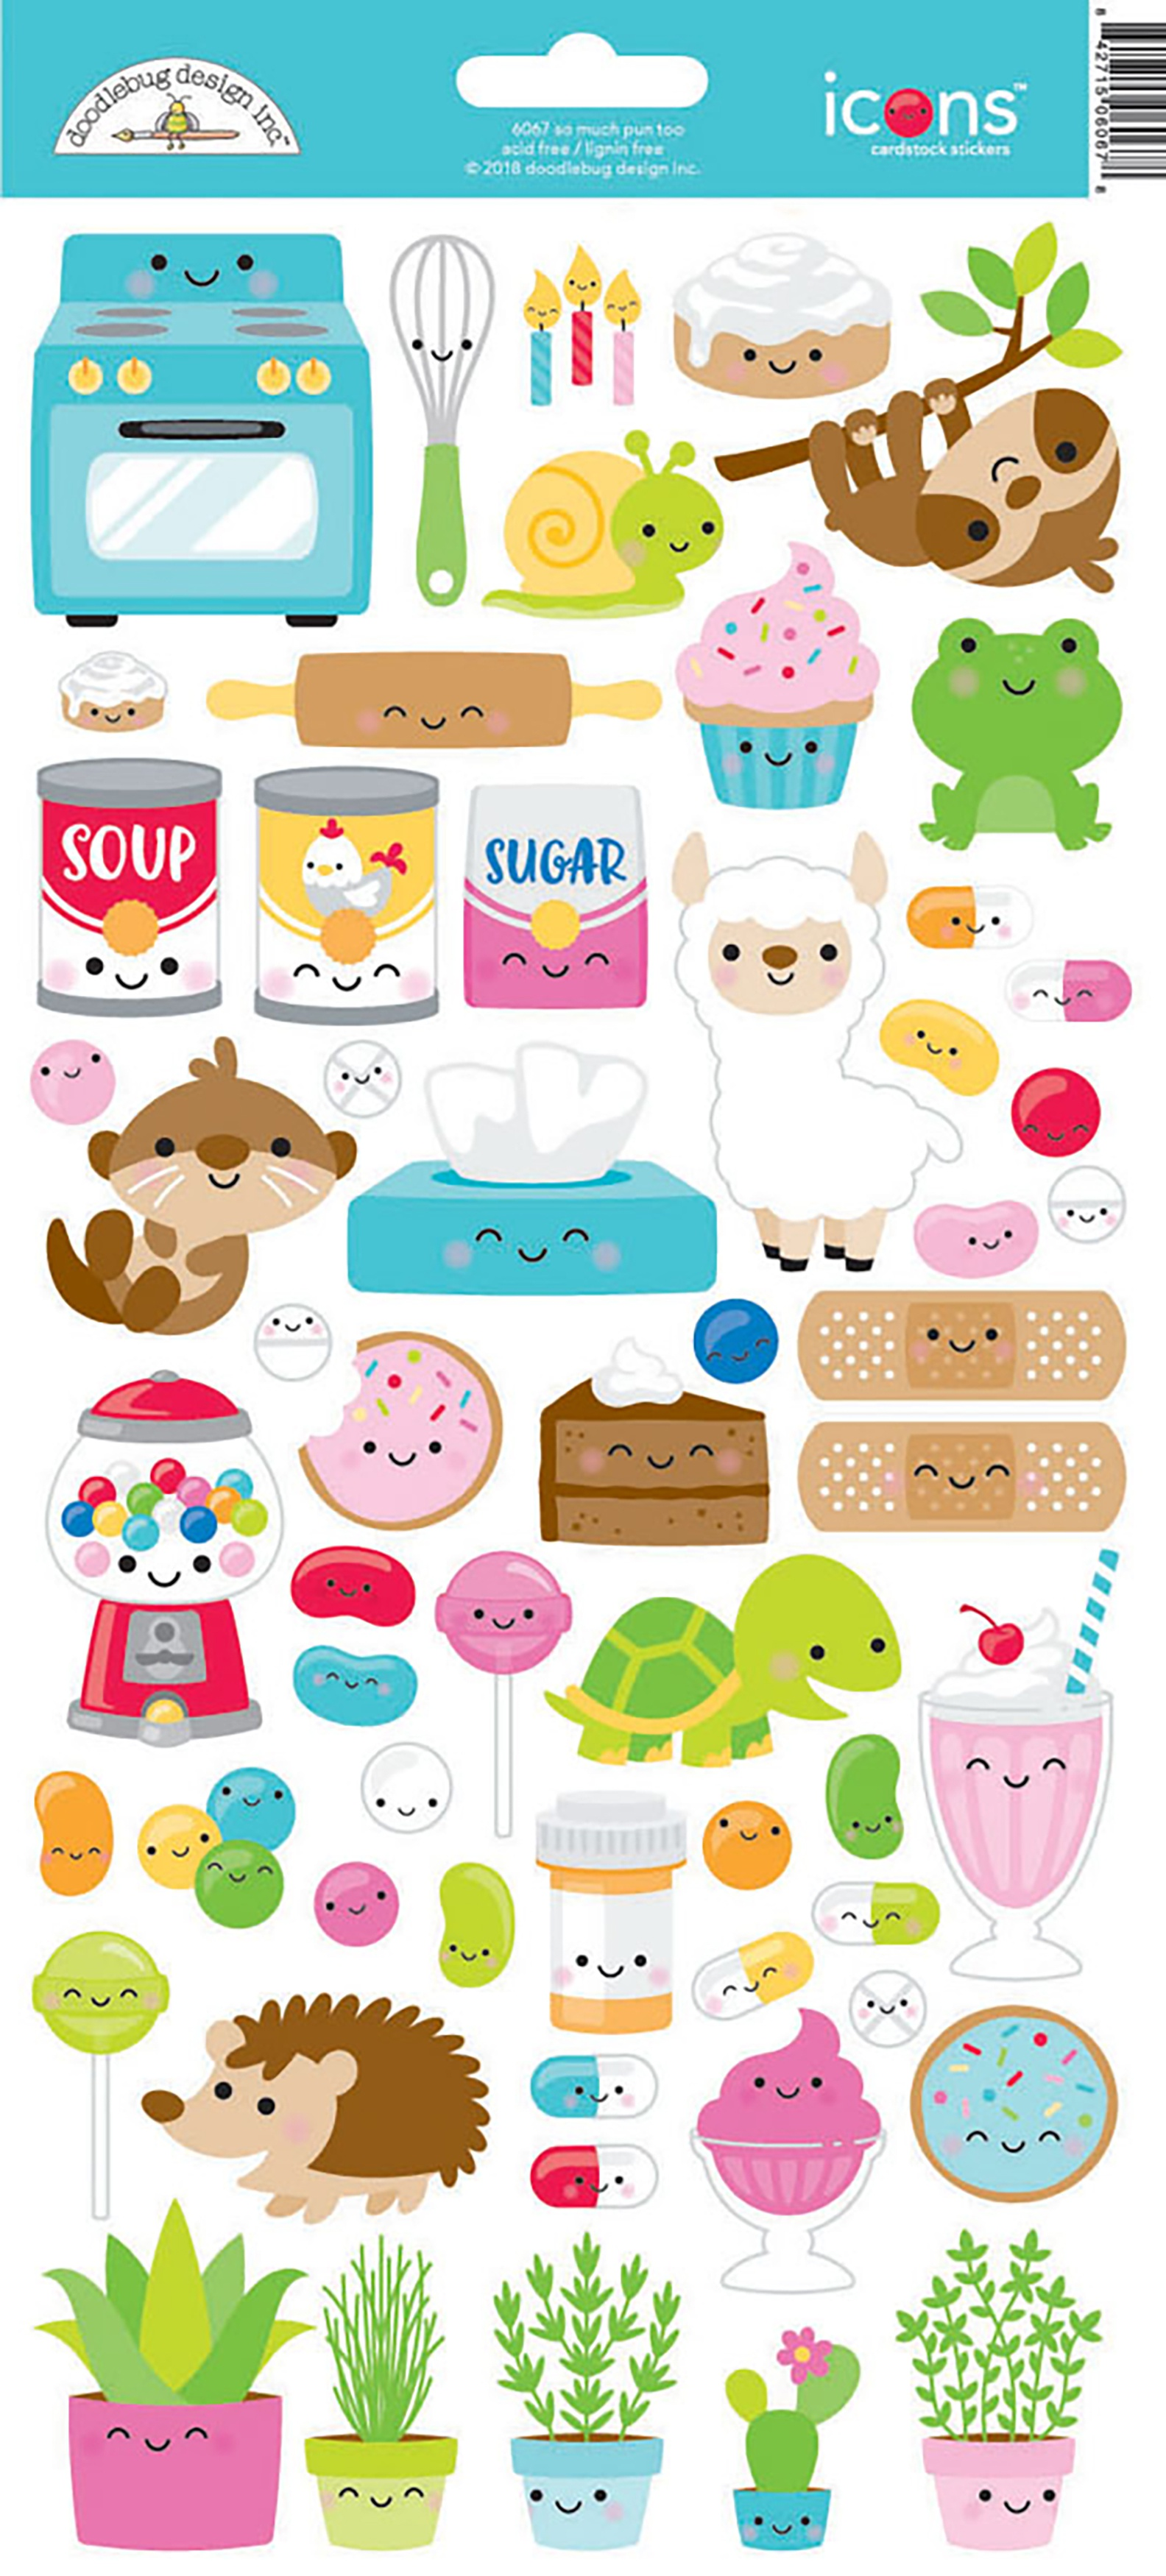 Stickers - So Much Pun Too Icons (Doodlebug)